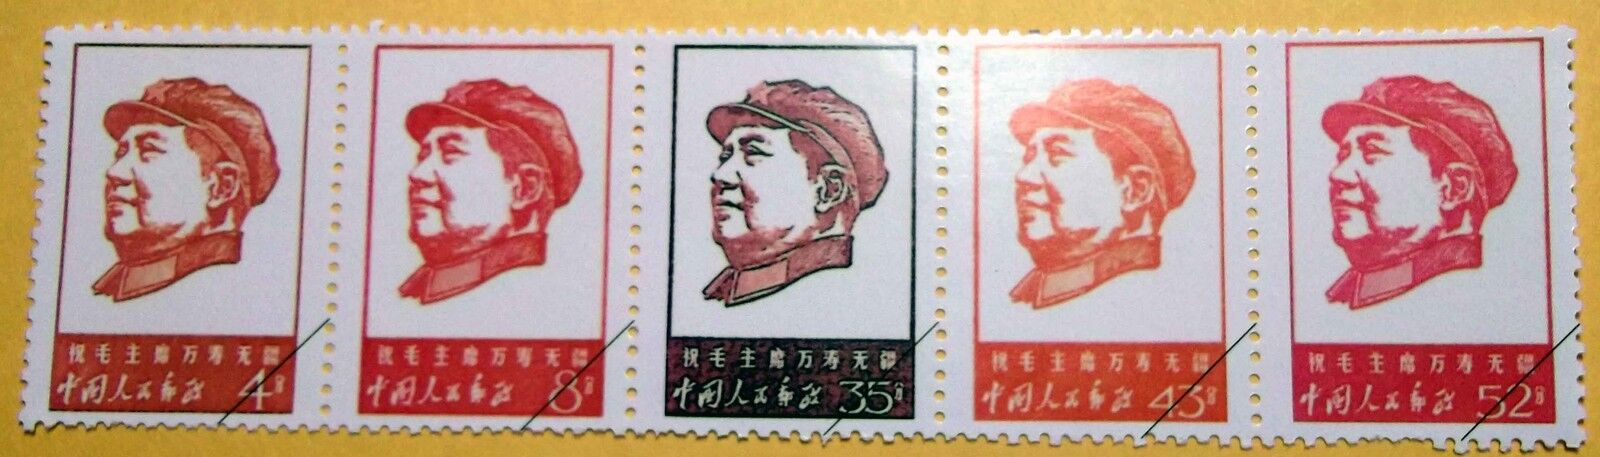 My Personal Stamps Collection